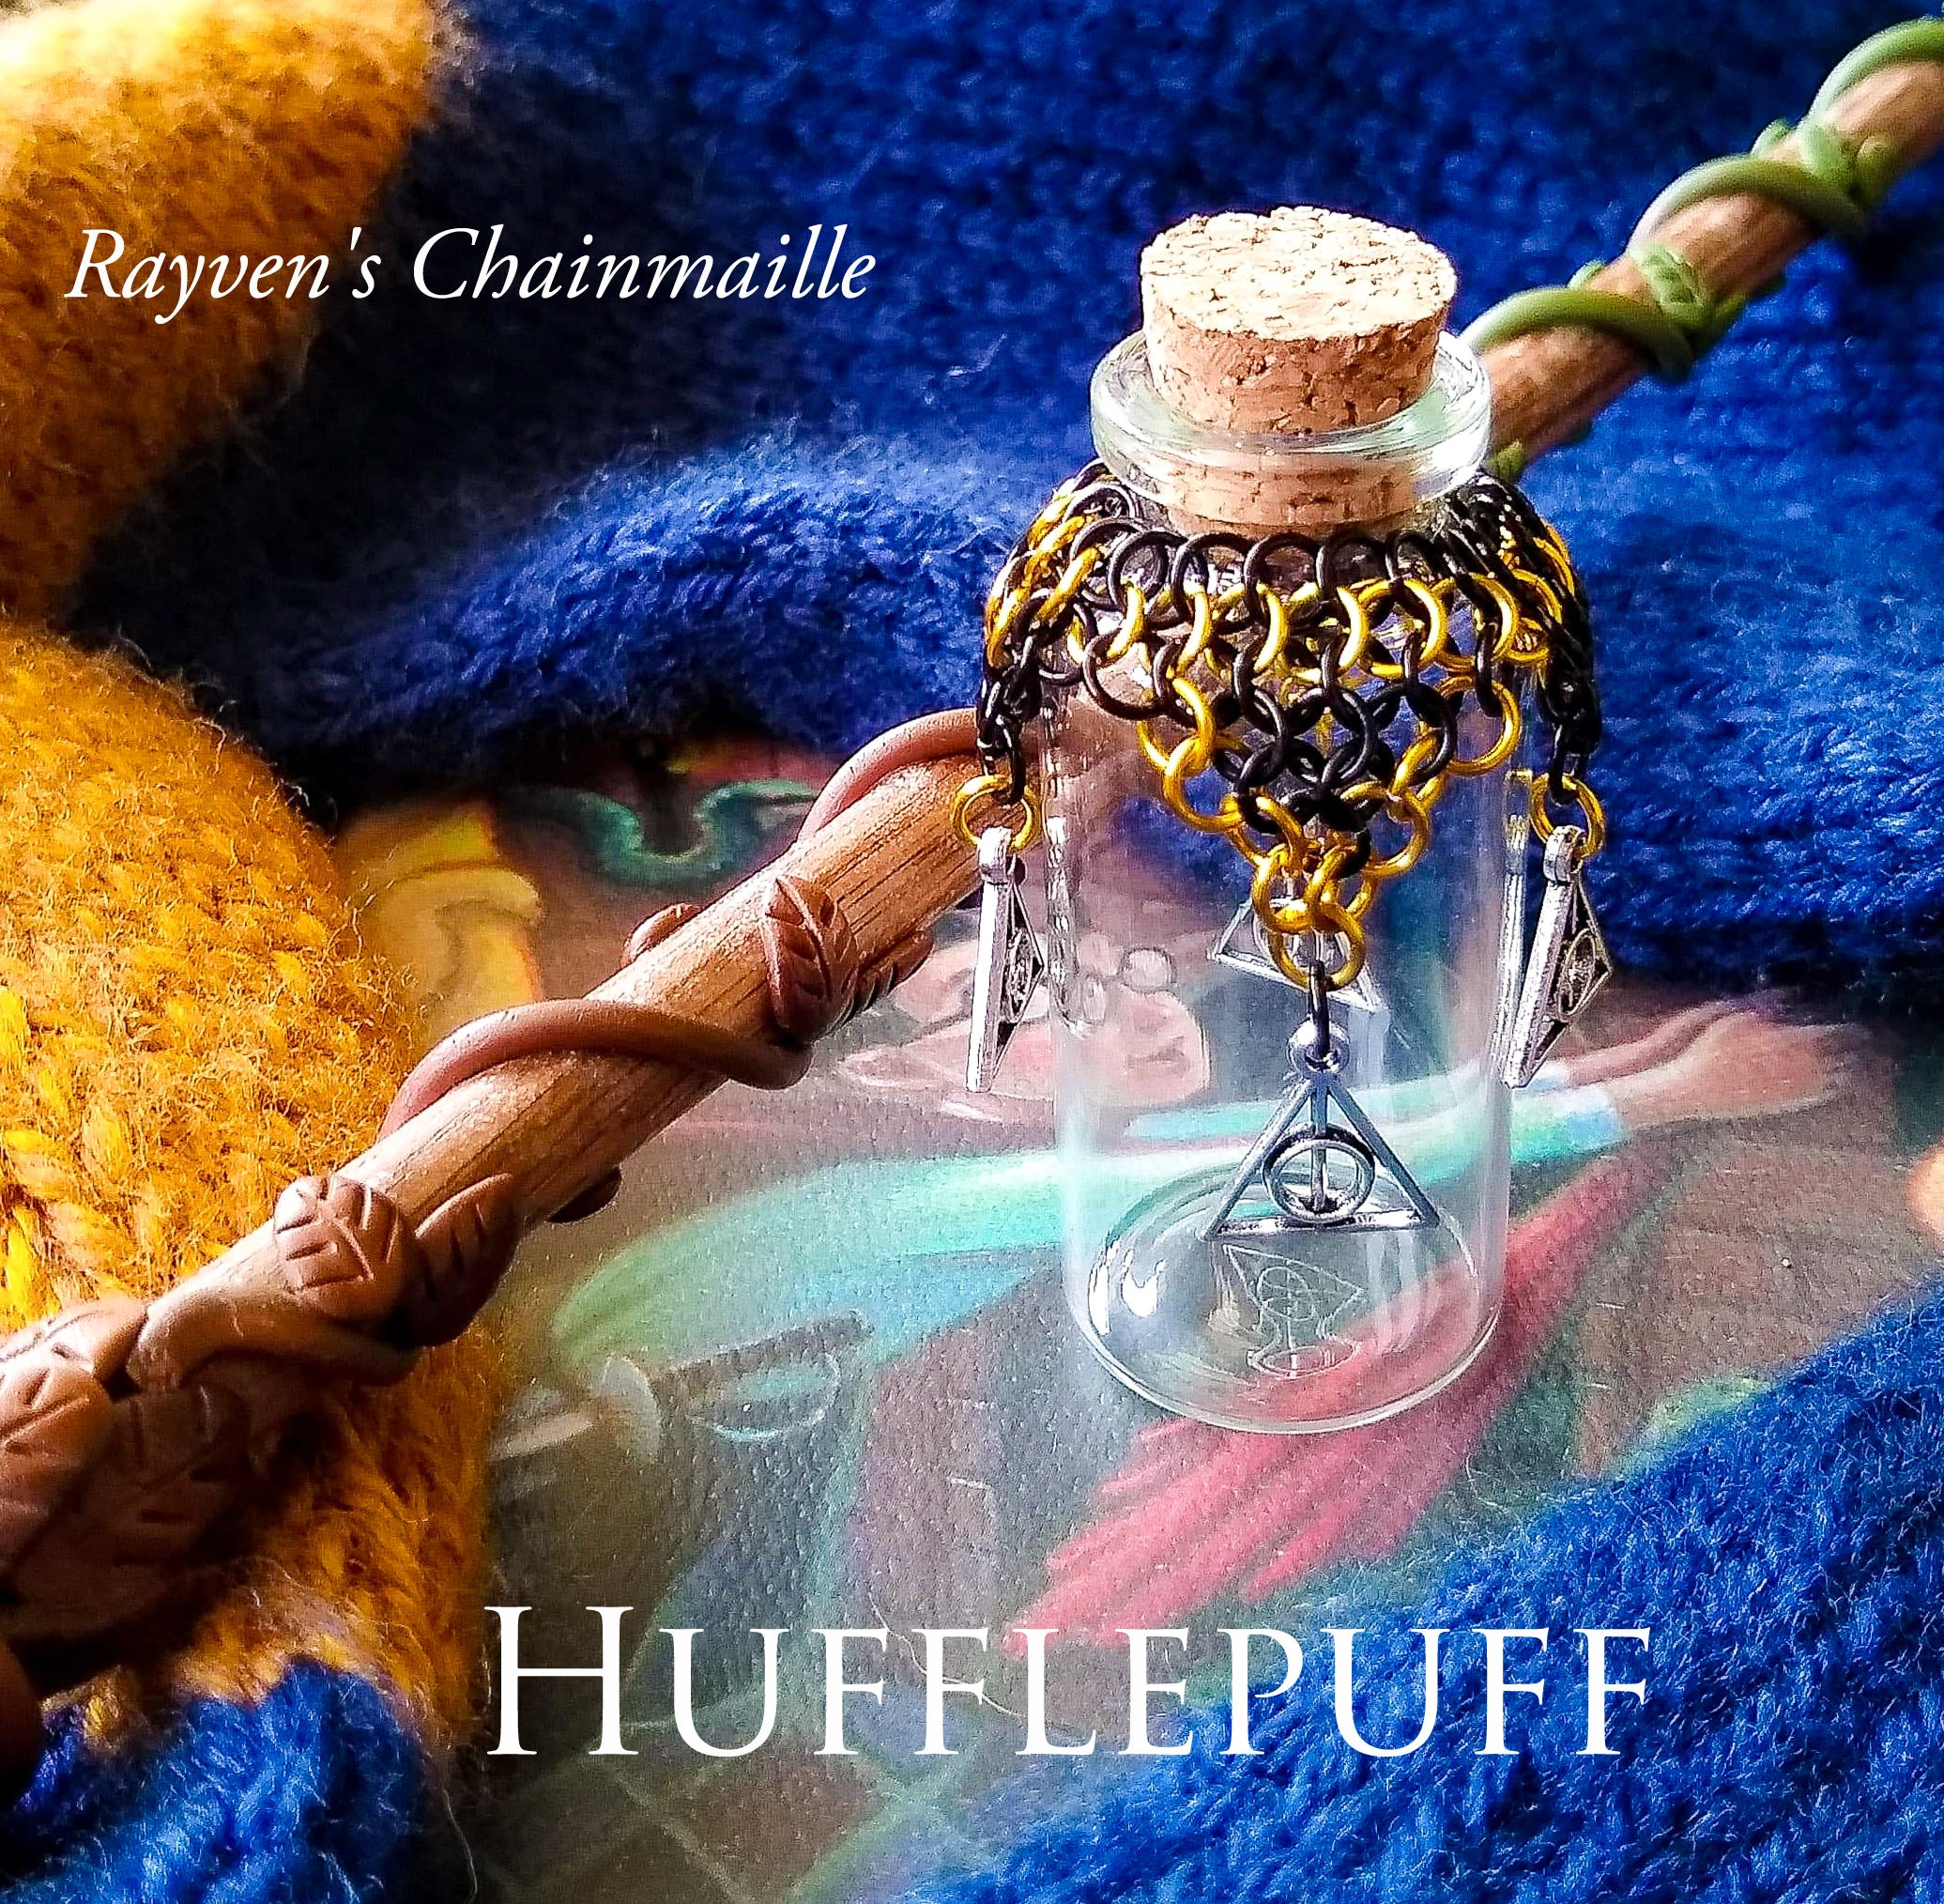 Rayven's Chainmaille| Harry Potter Hufflepuff House Chainmaille Potion Bottles